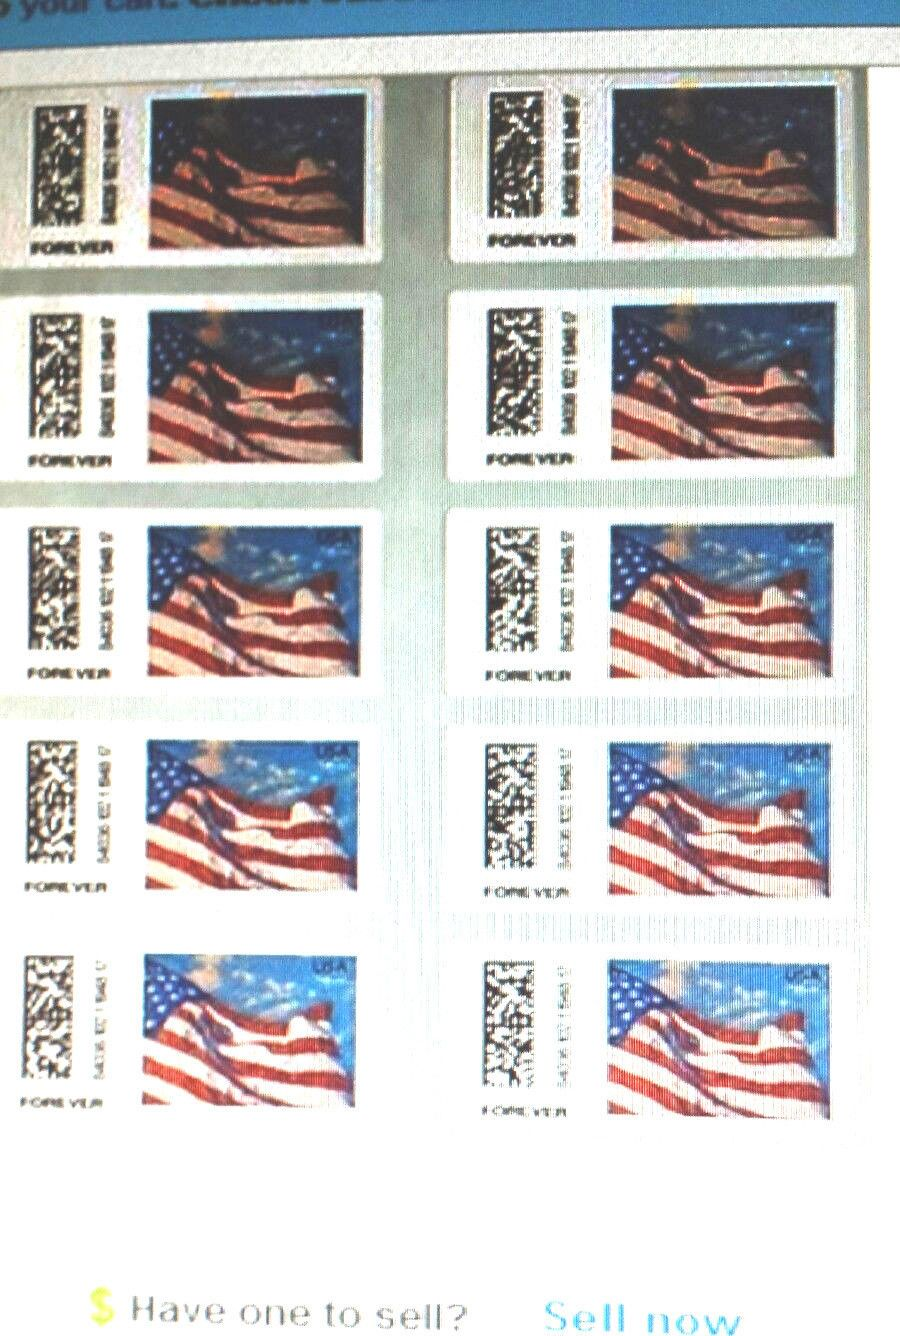 100 USPS Certified Forever Stamps 10 Sheets of 10 = 100 (( Save Now